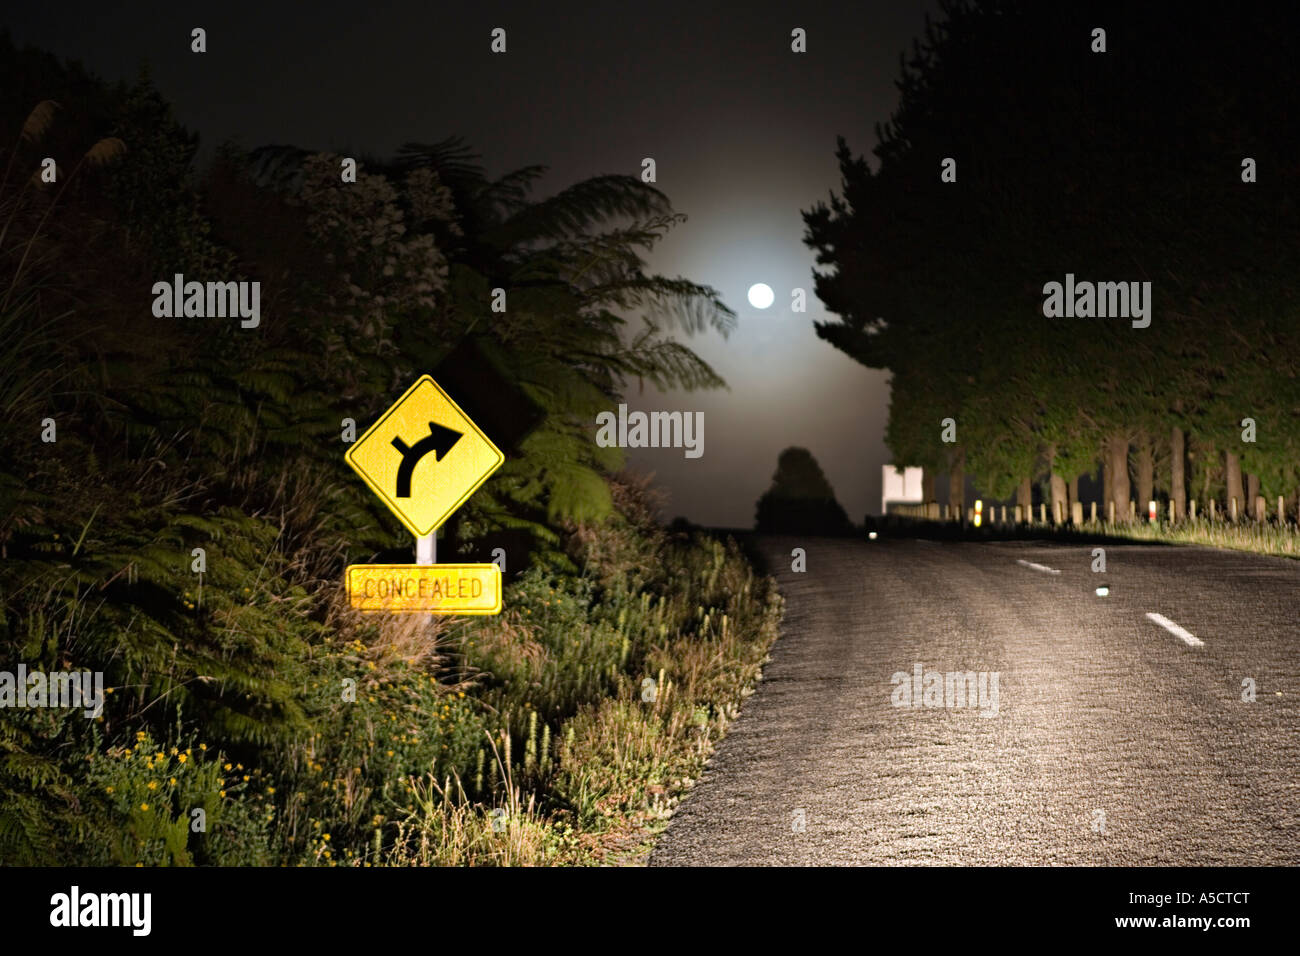 Moonset over road at night - Stock Image